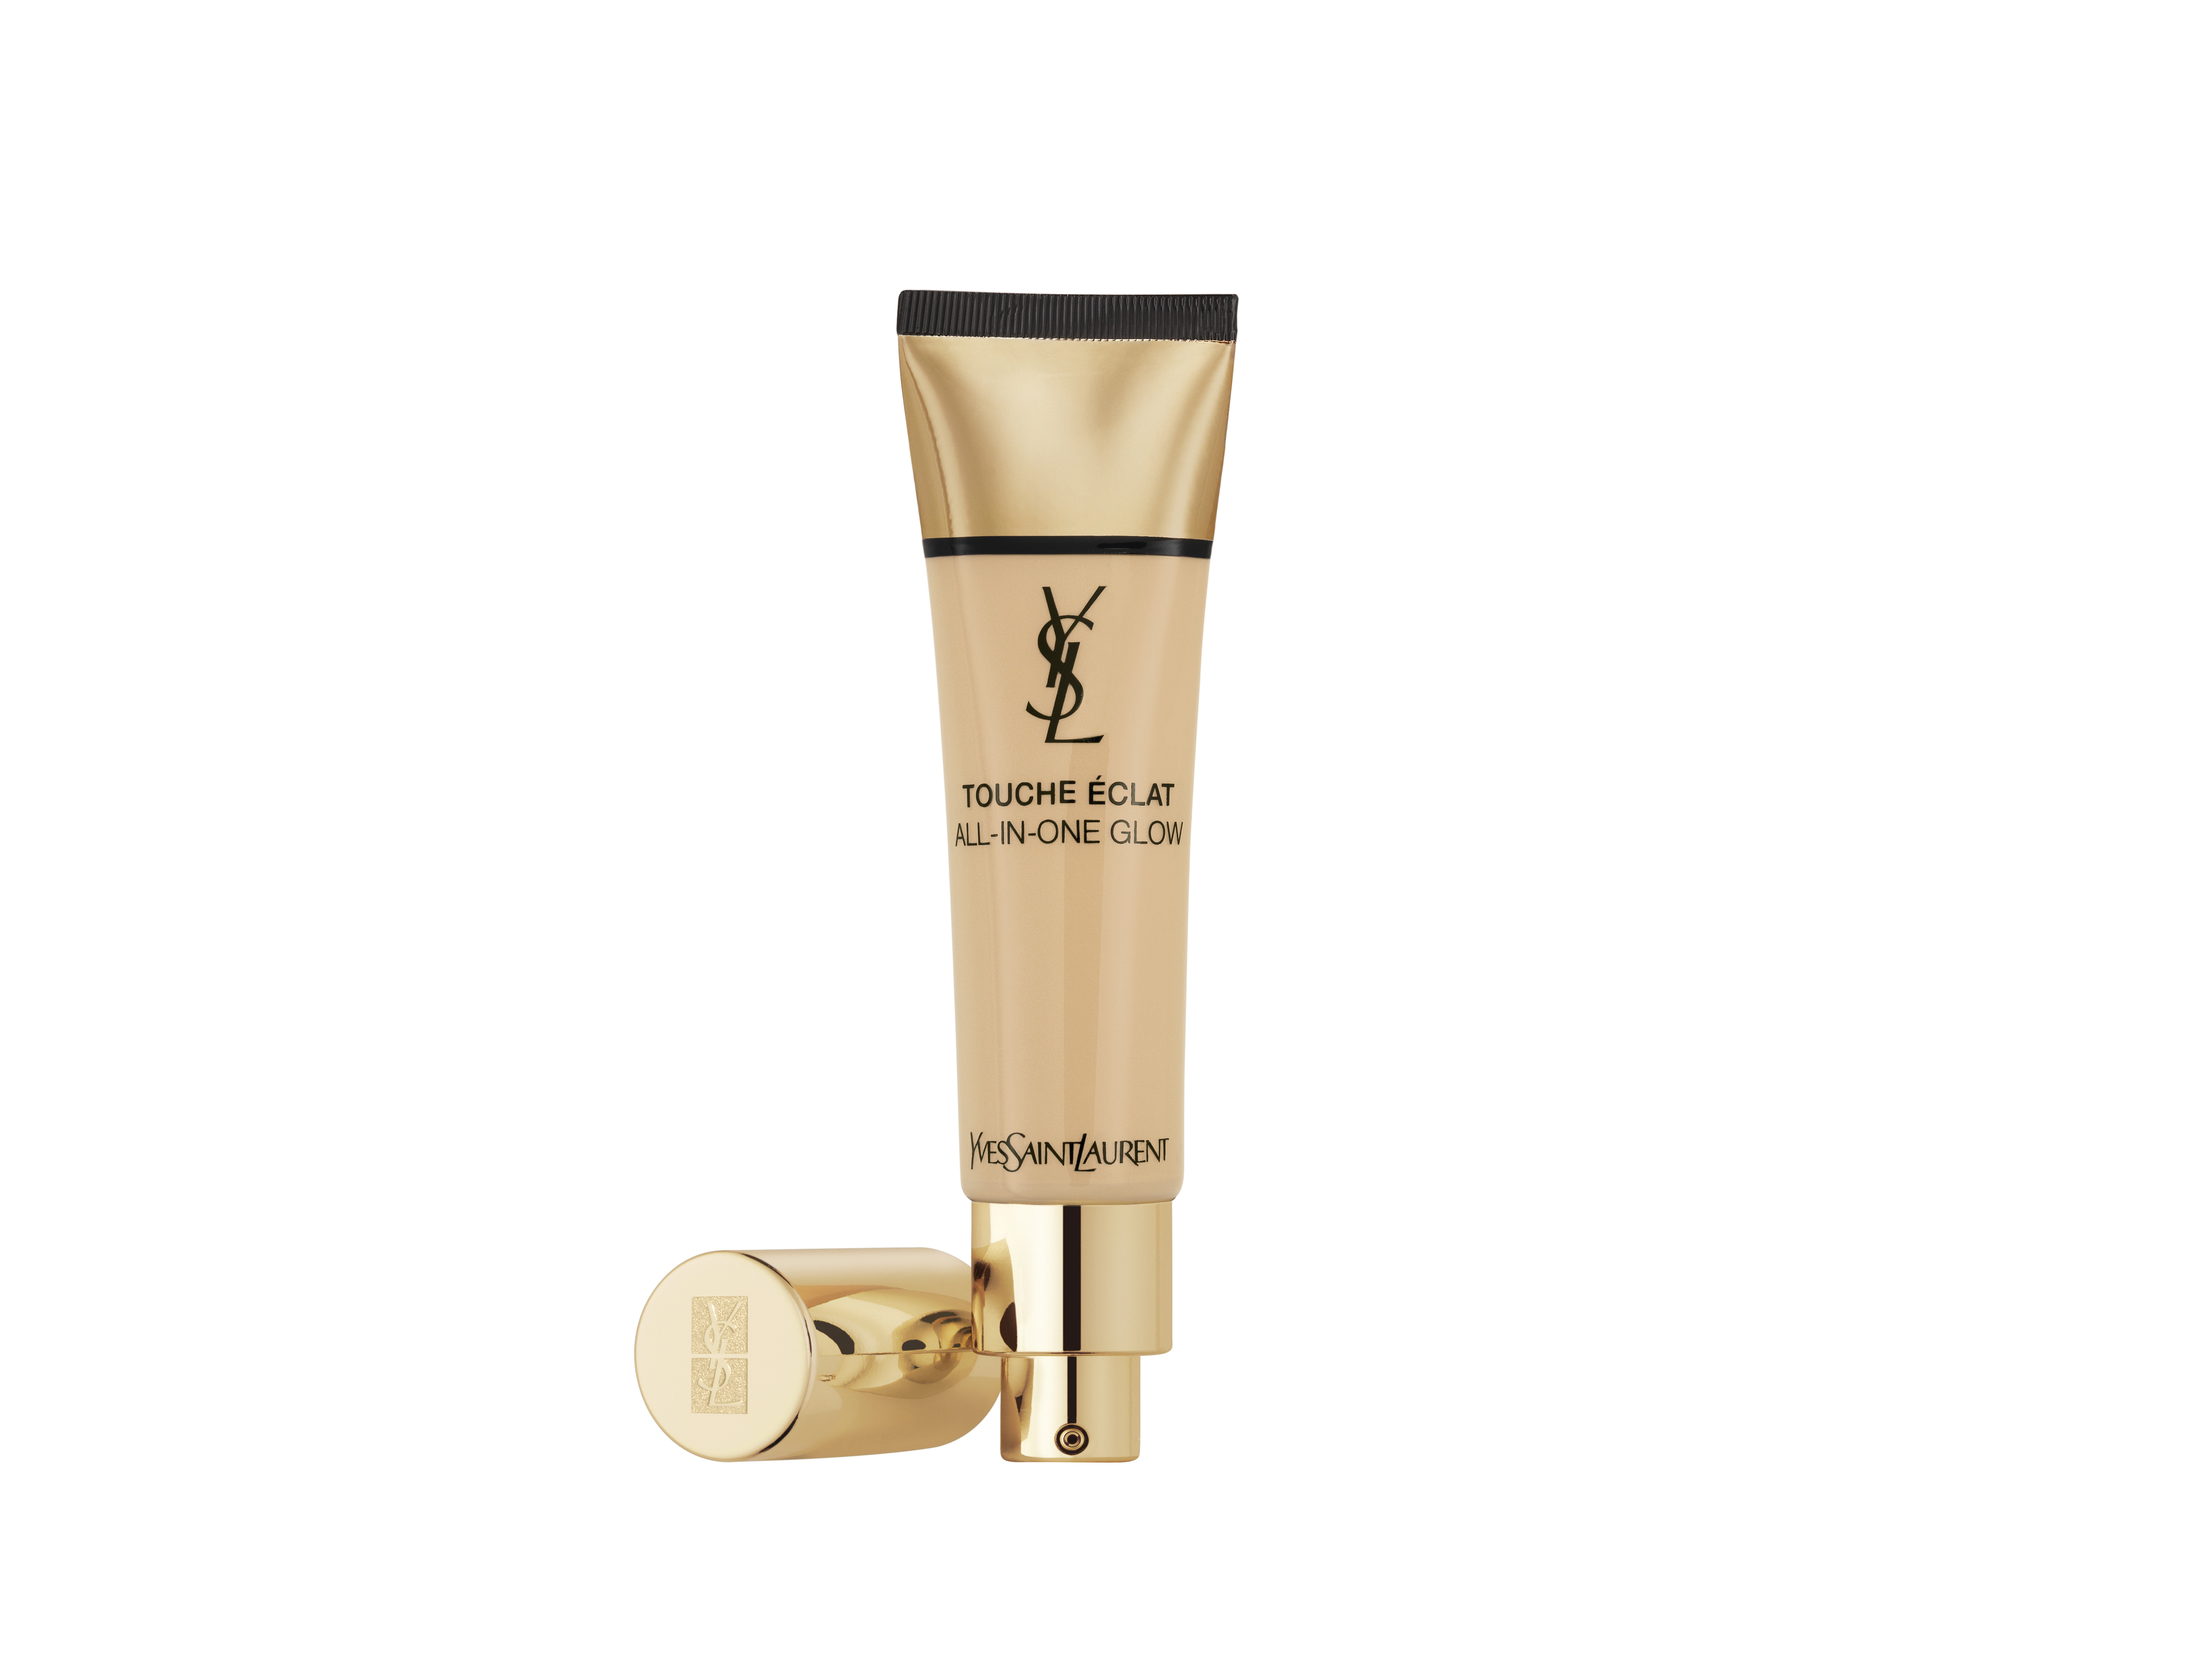 Touche Eclat Easy Glow Foundation B30 Almond - Light 2